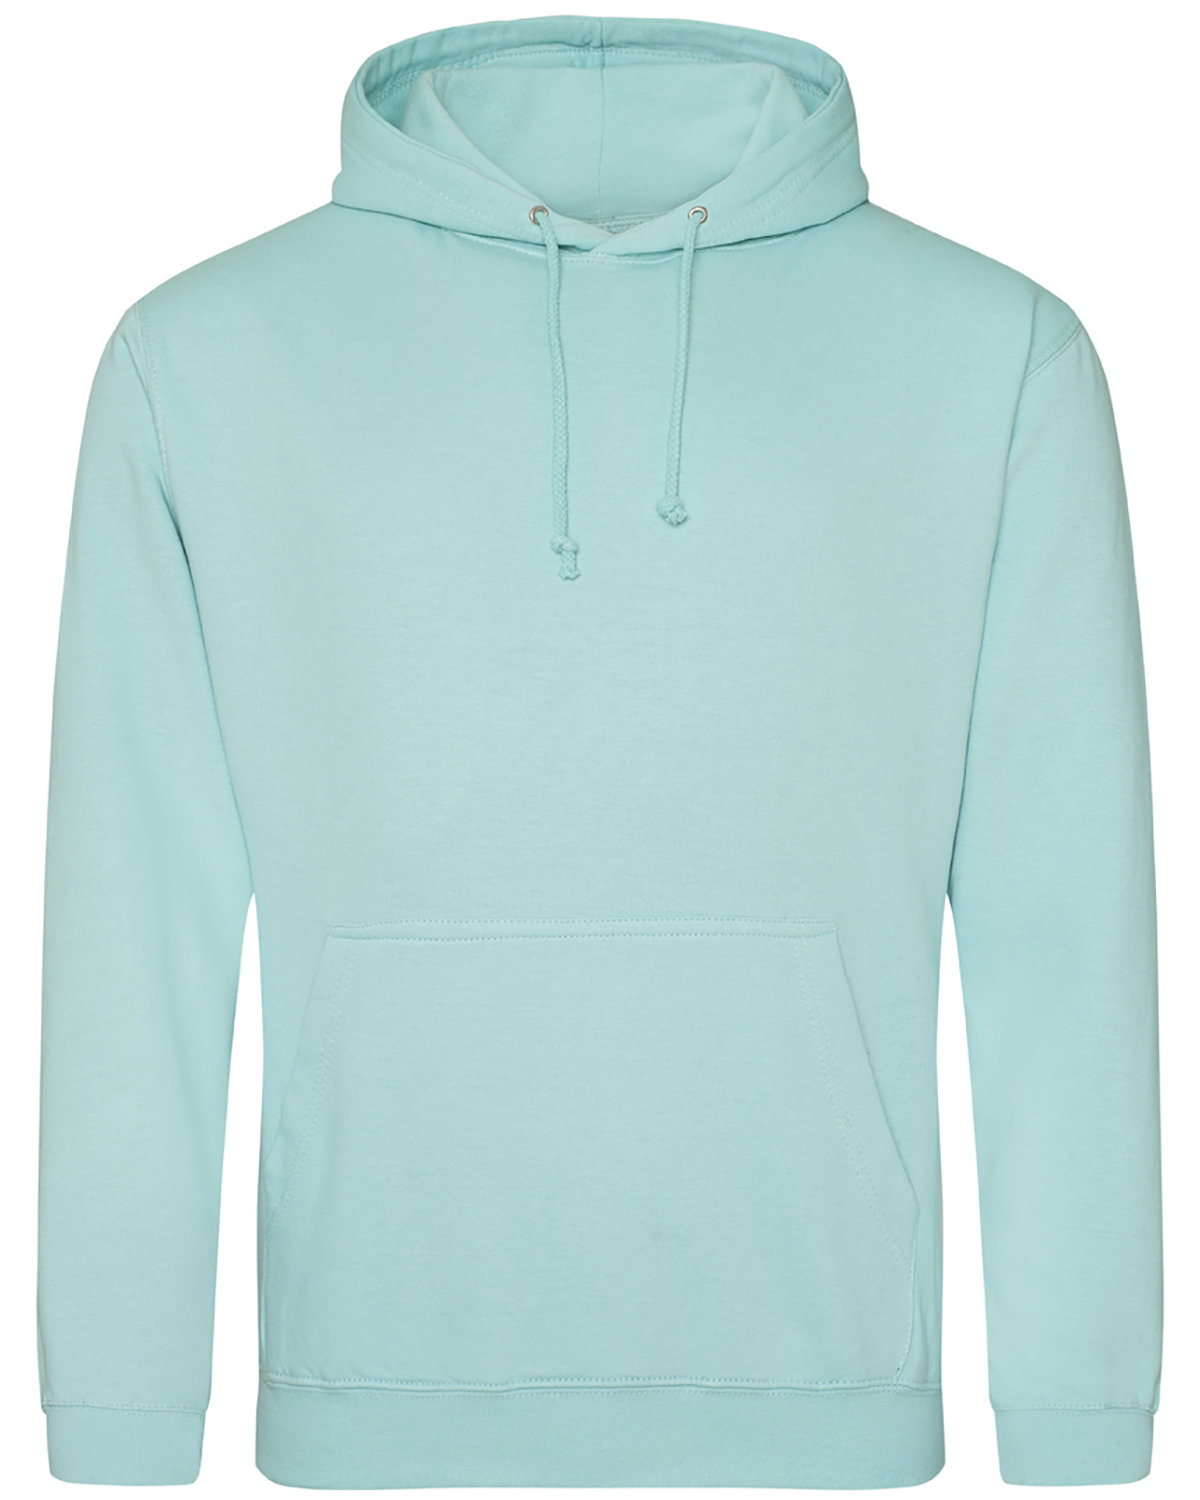 Just Hoods By AWDis Men's 80/20 Midweight College Hooded Sweatshirt PEPPERMINT